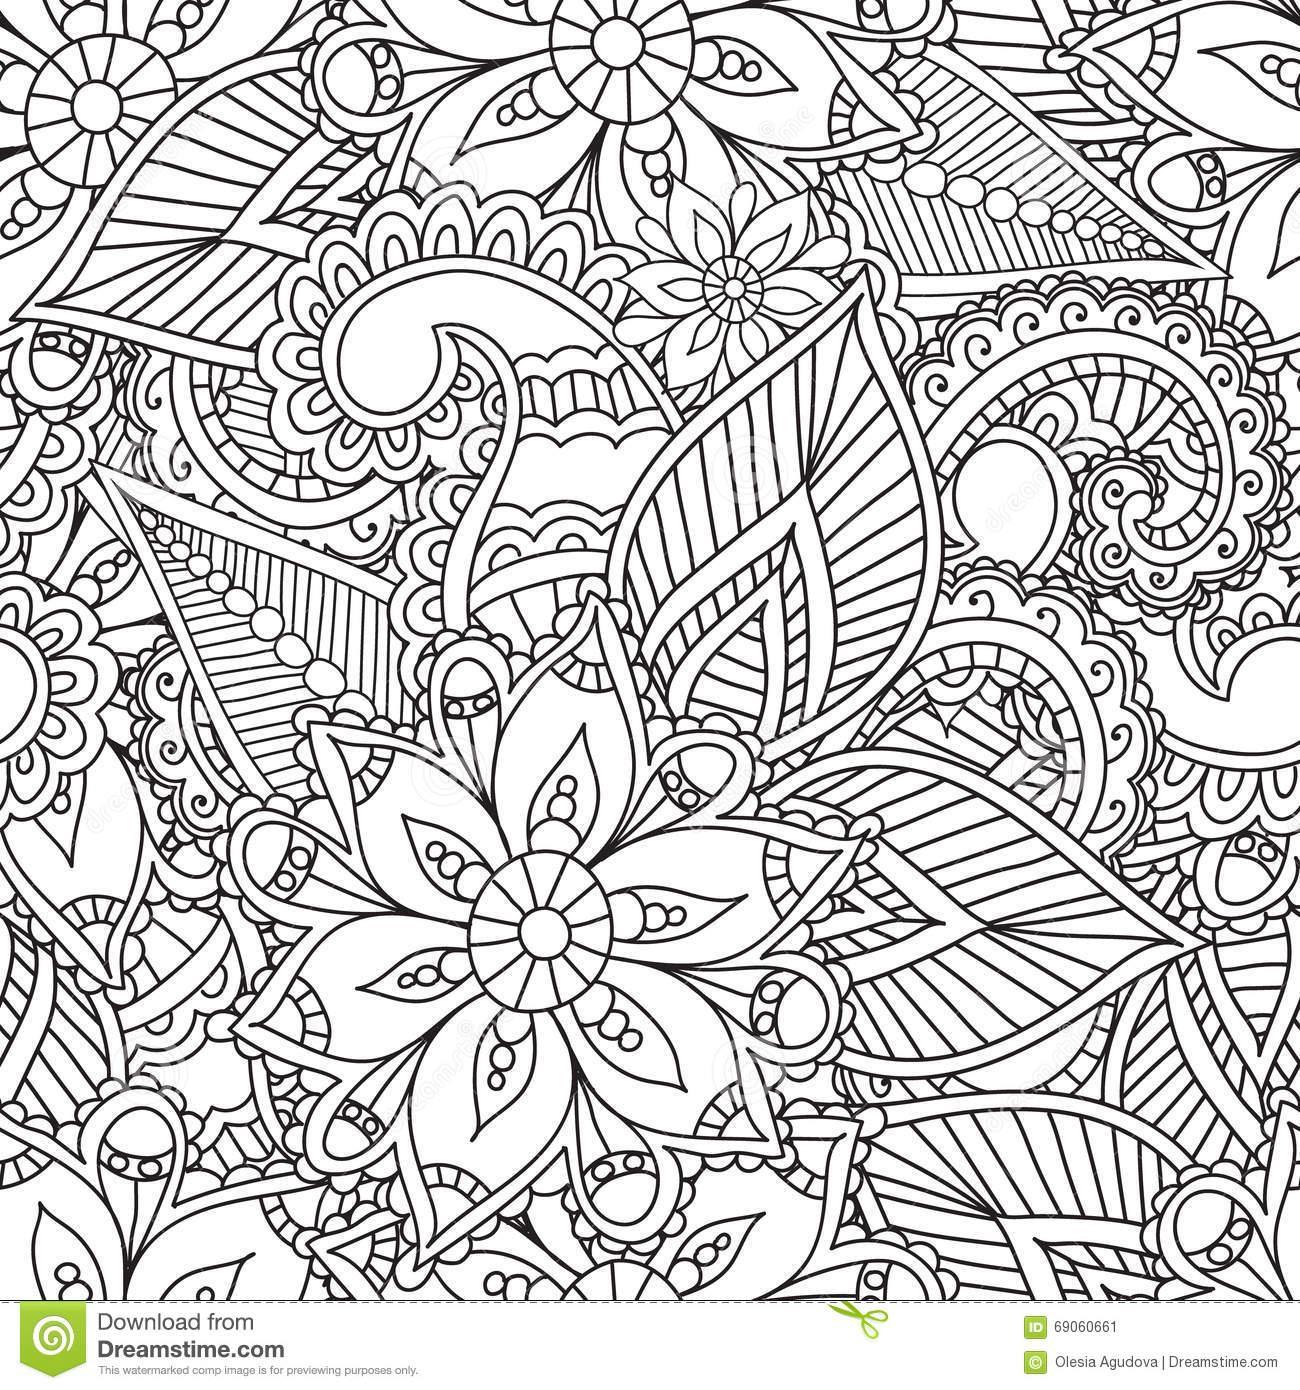 royalty free vector download coloring pages - Coloring Pages Abstract Designs